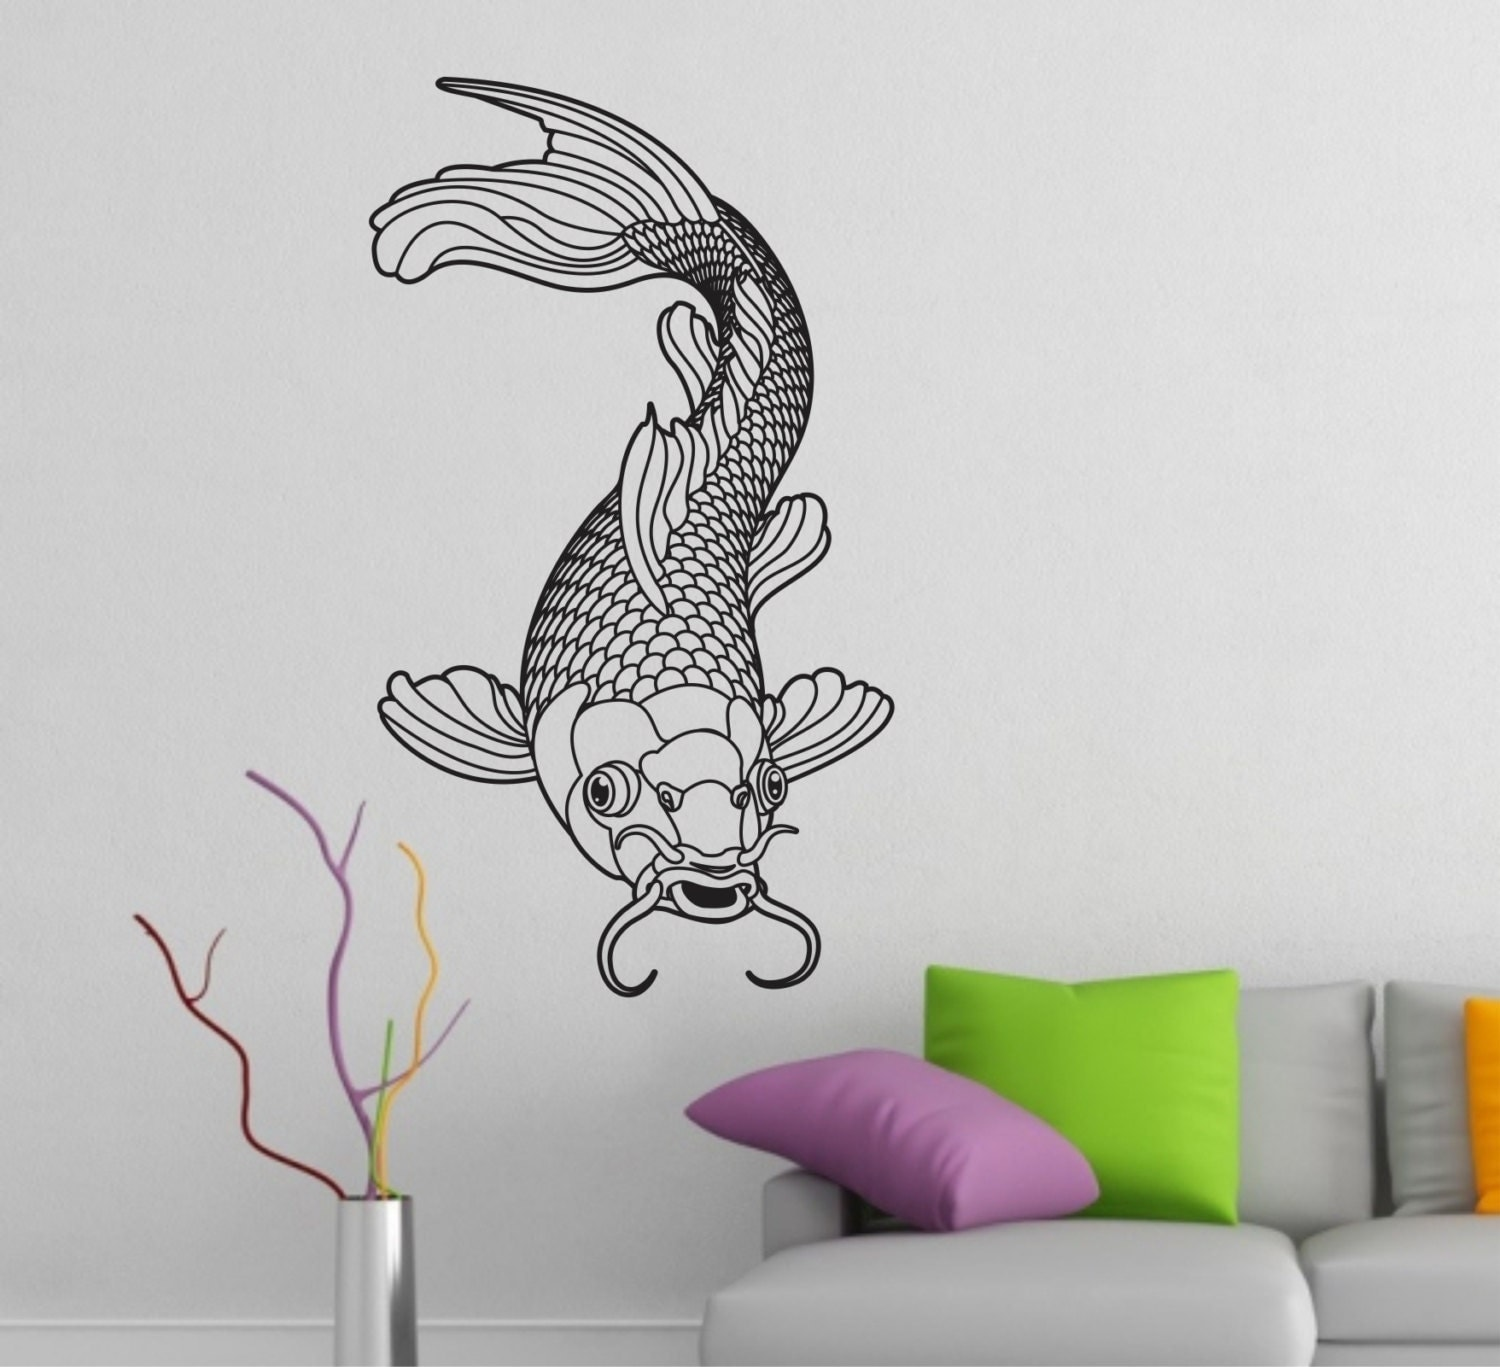 Koi wall decal vinyl sticker decals art decor tattoo inspired for Koi wall decal